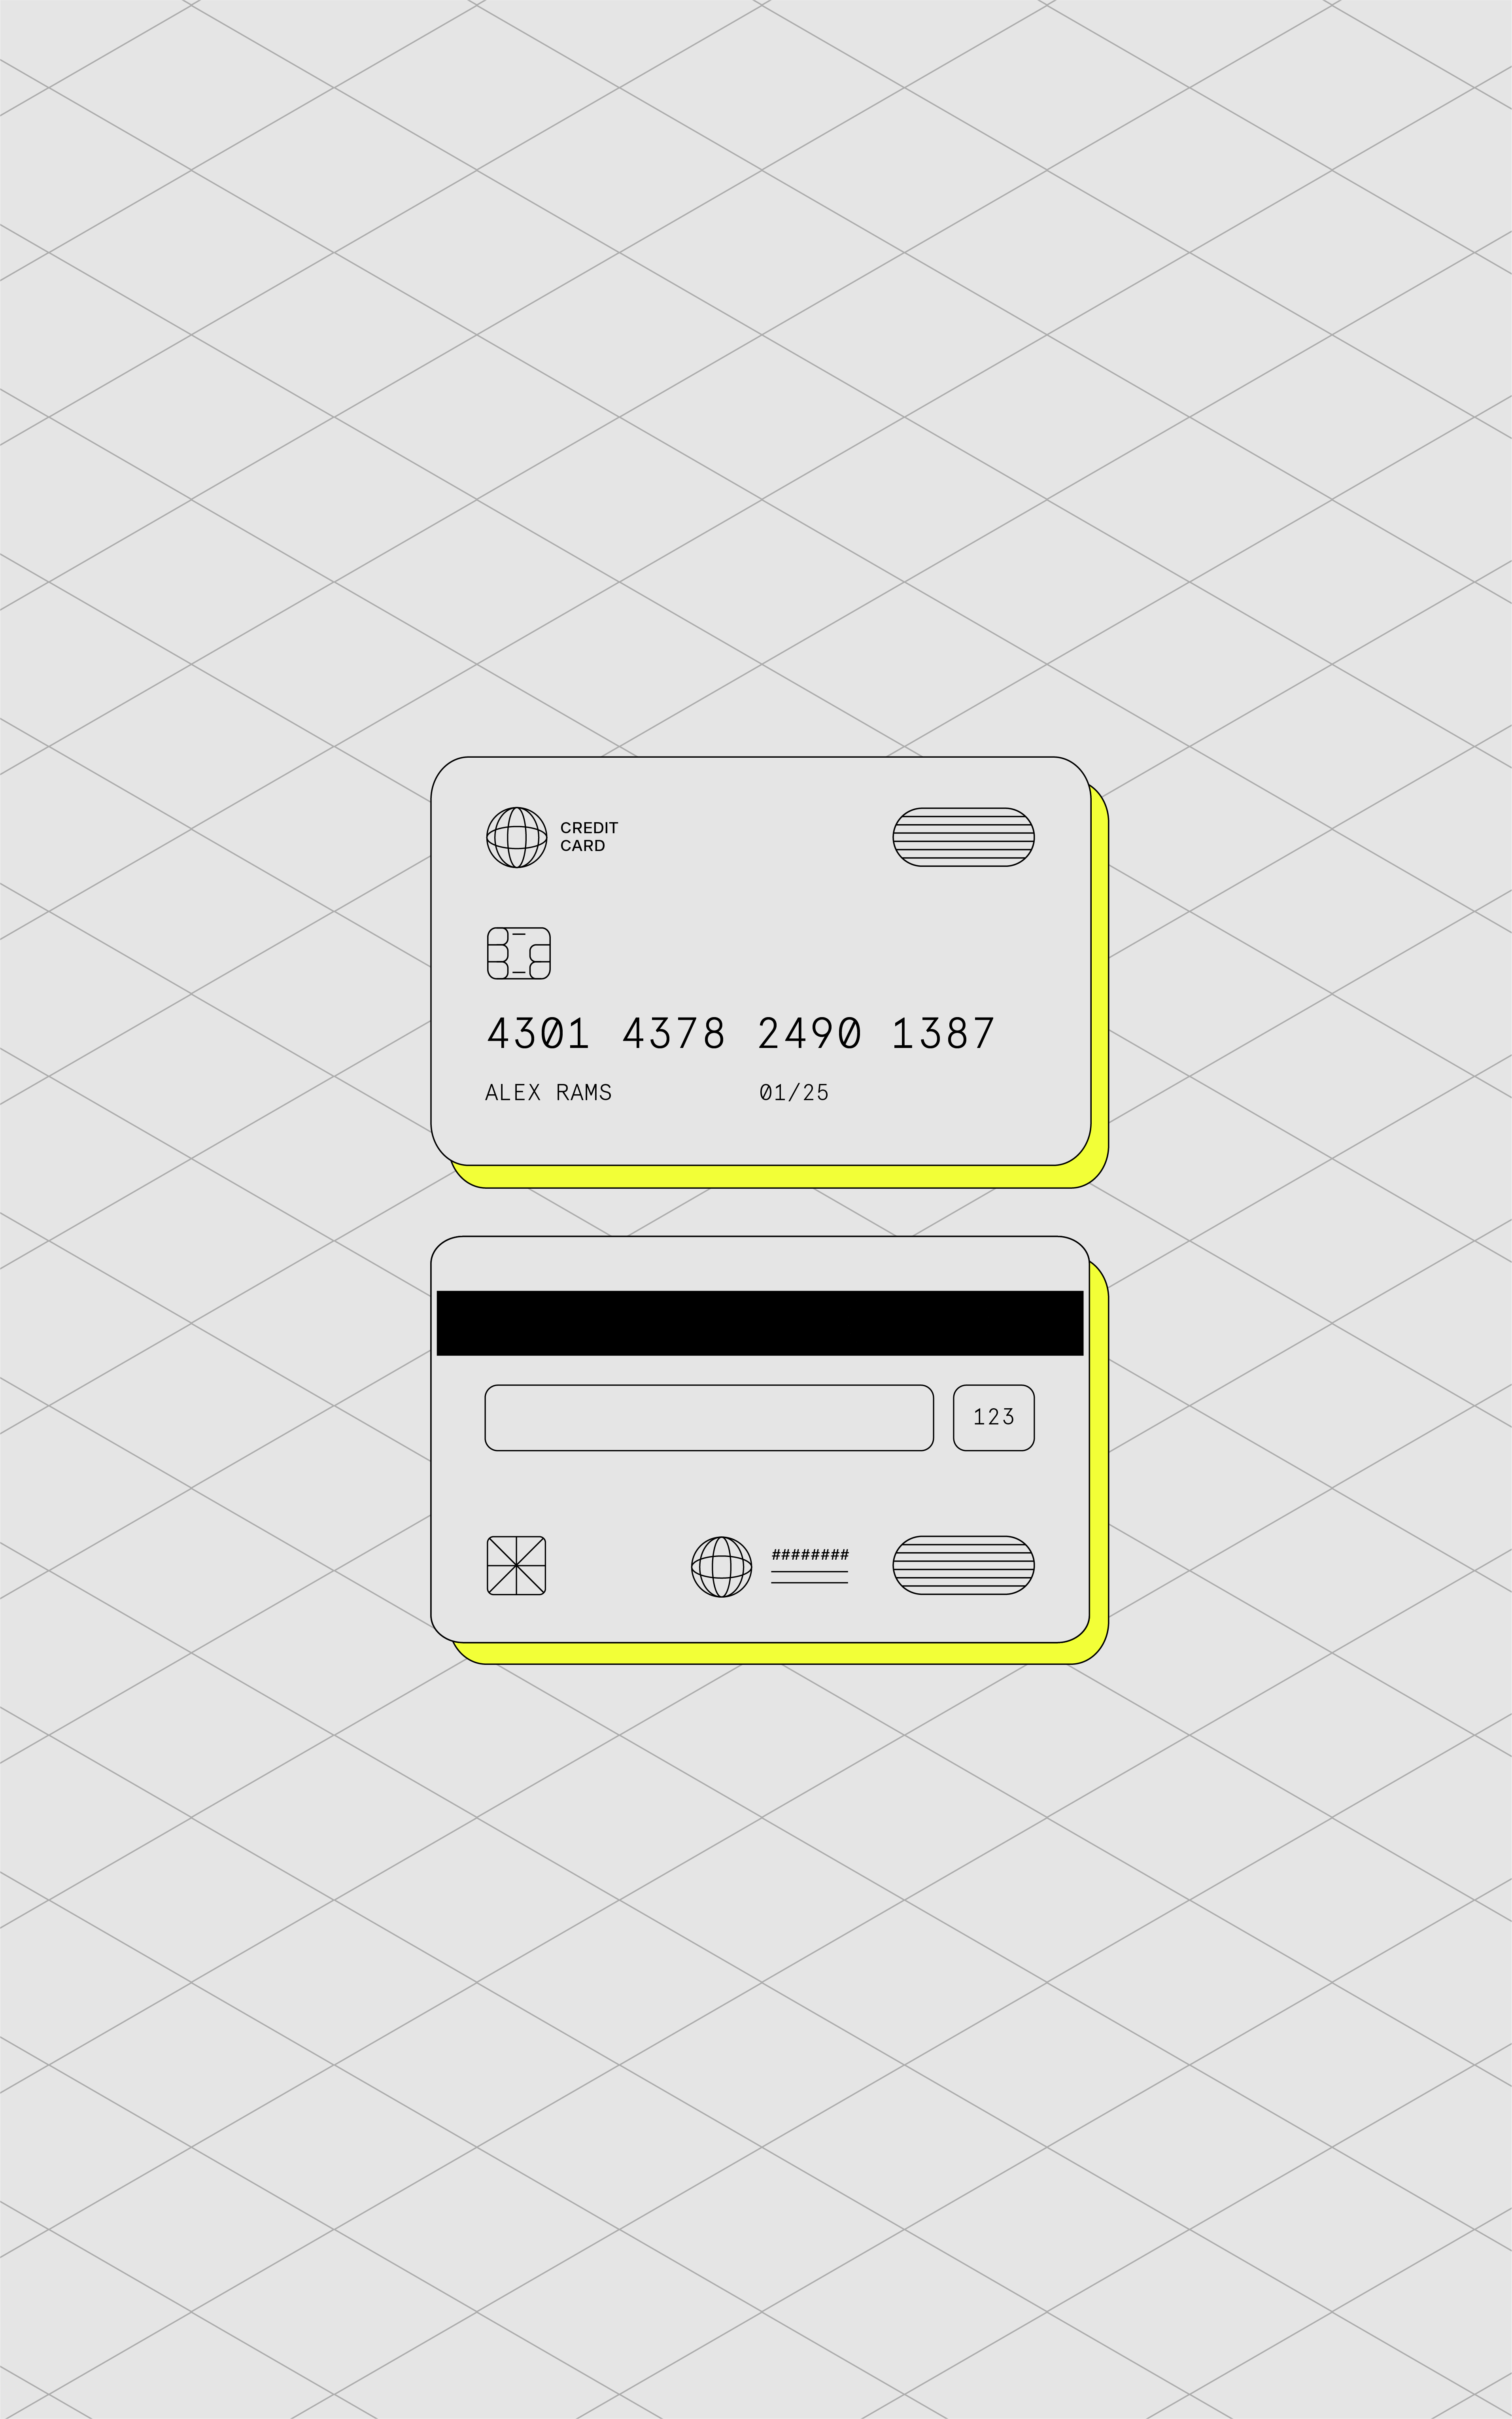 A Guide to Understanding the Numbers on Credit & Debit Cards